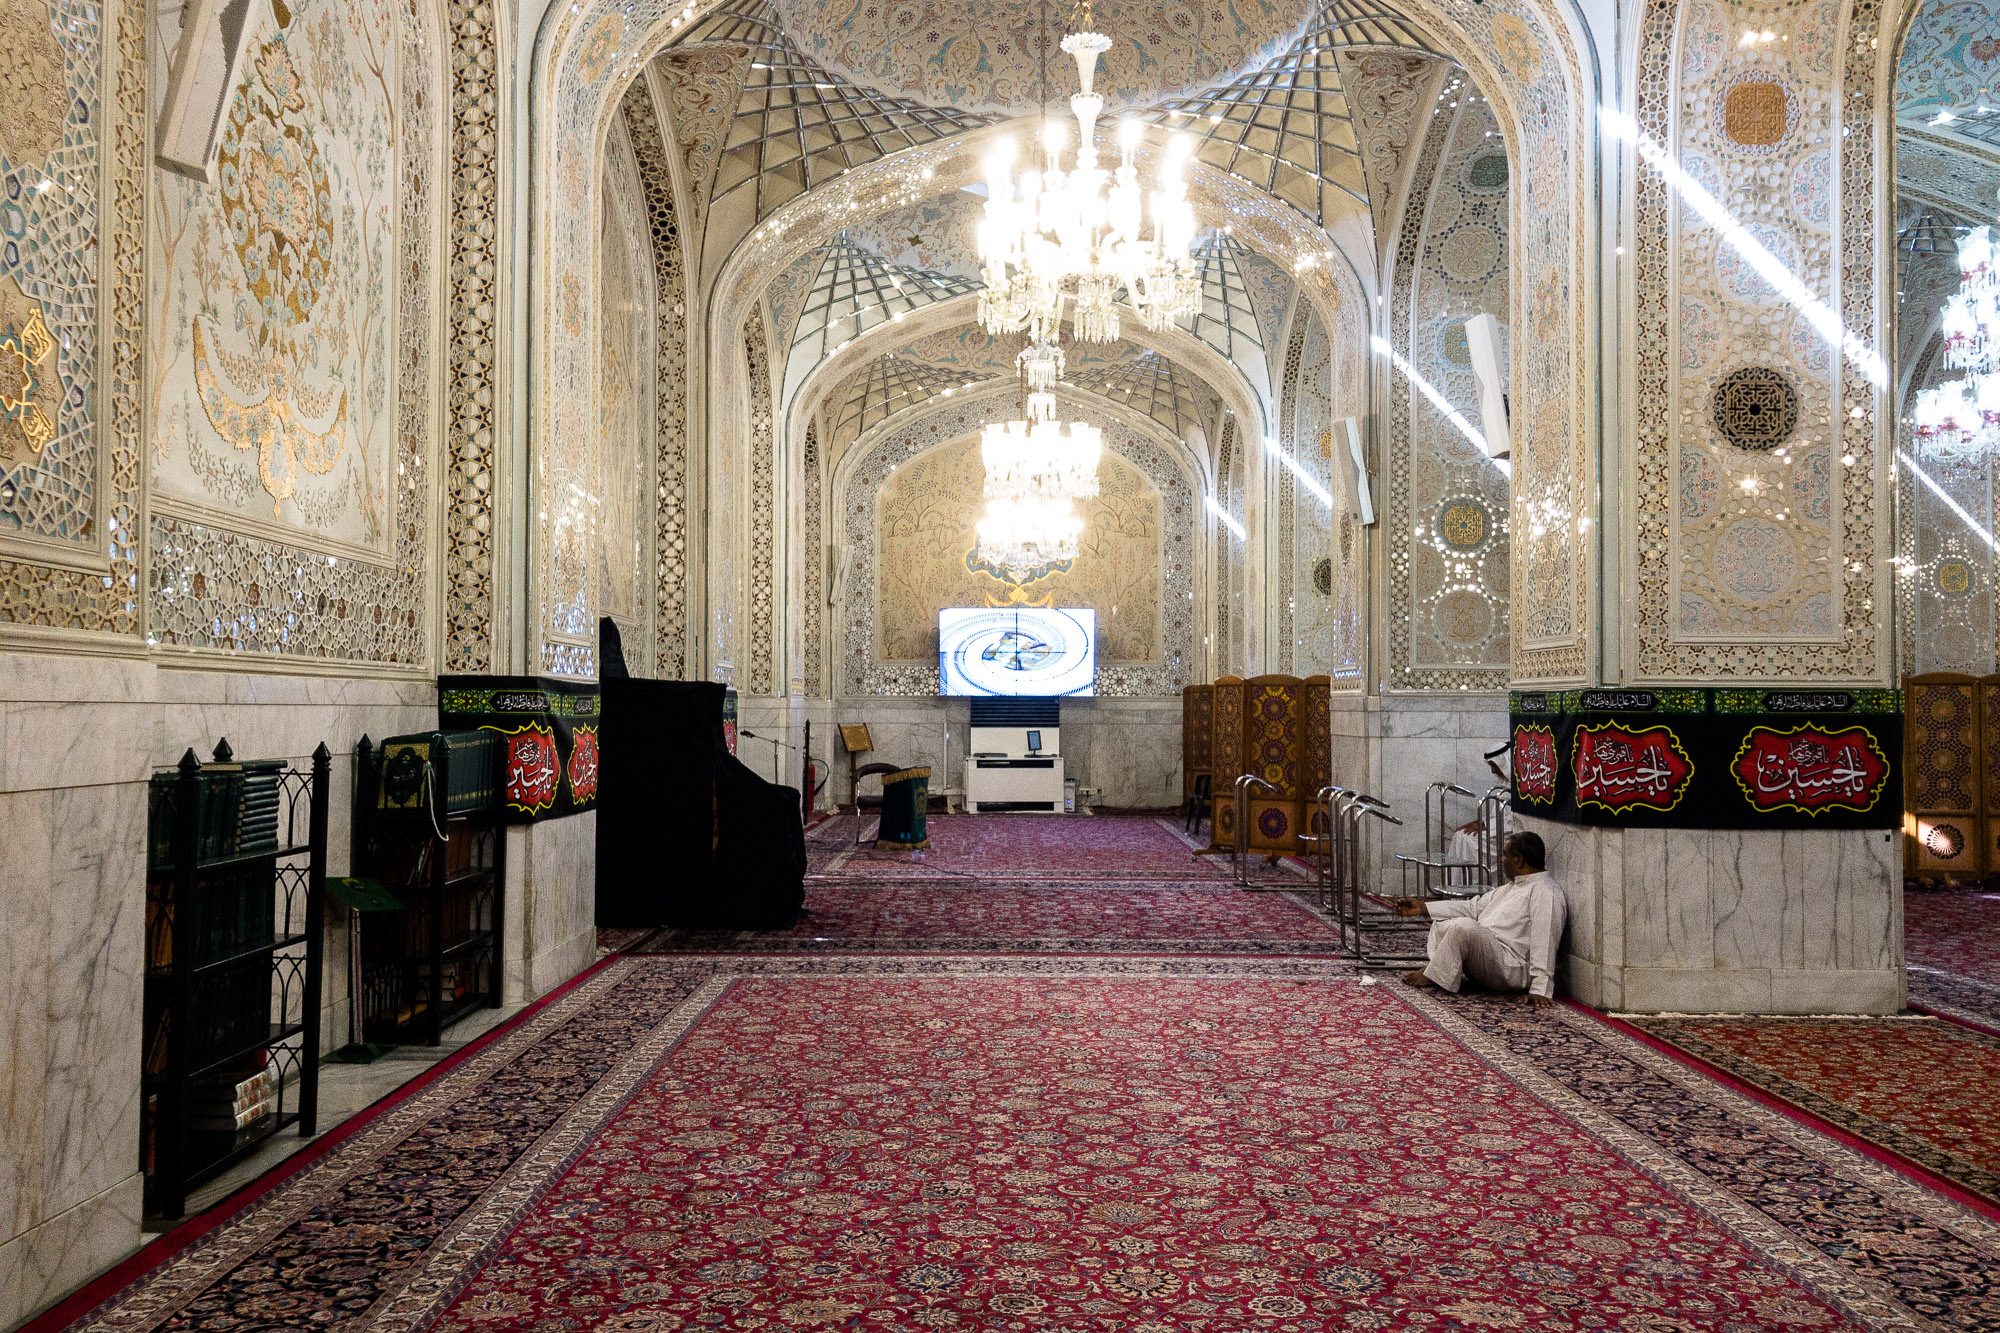 visitor center in the shrine of Imam Reza